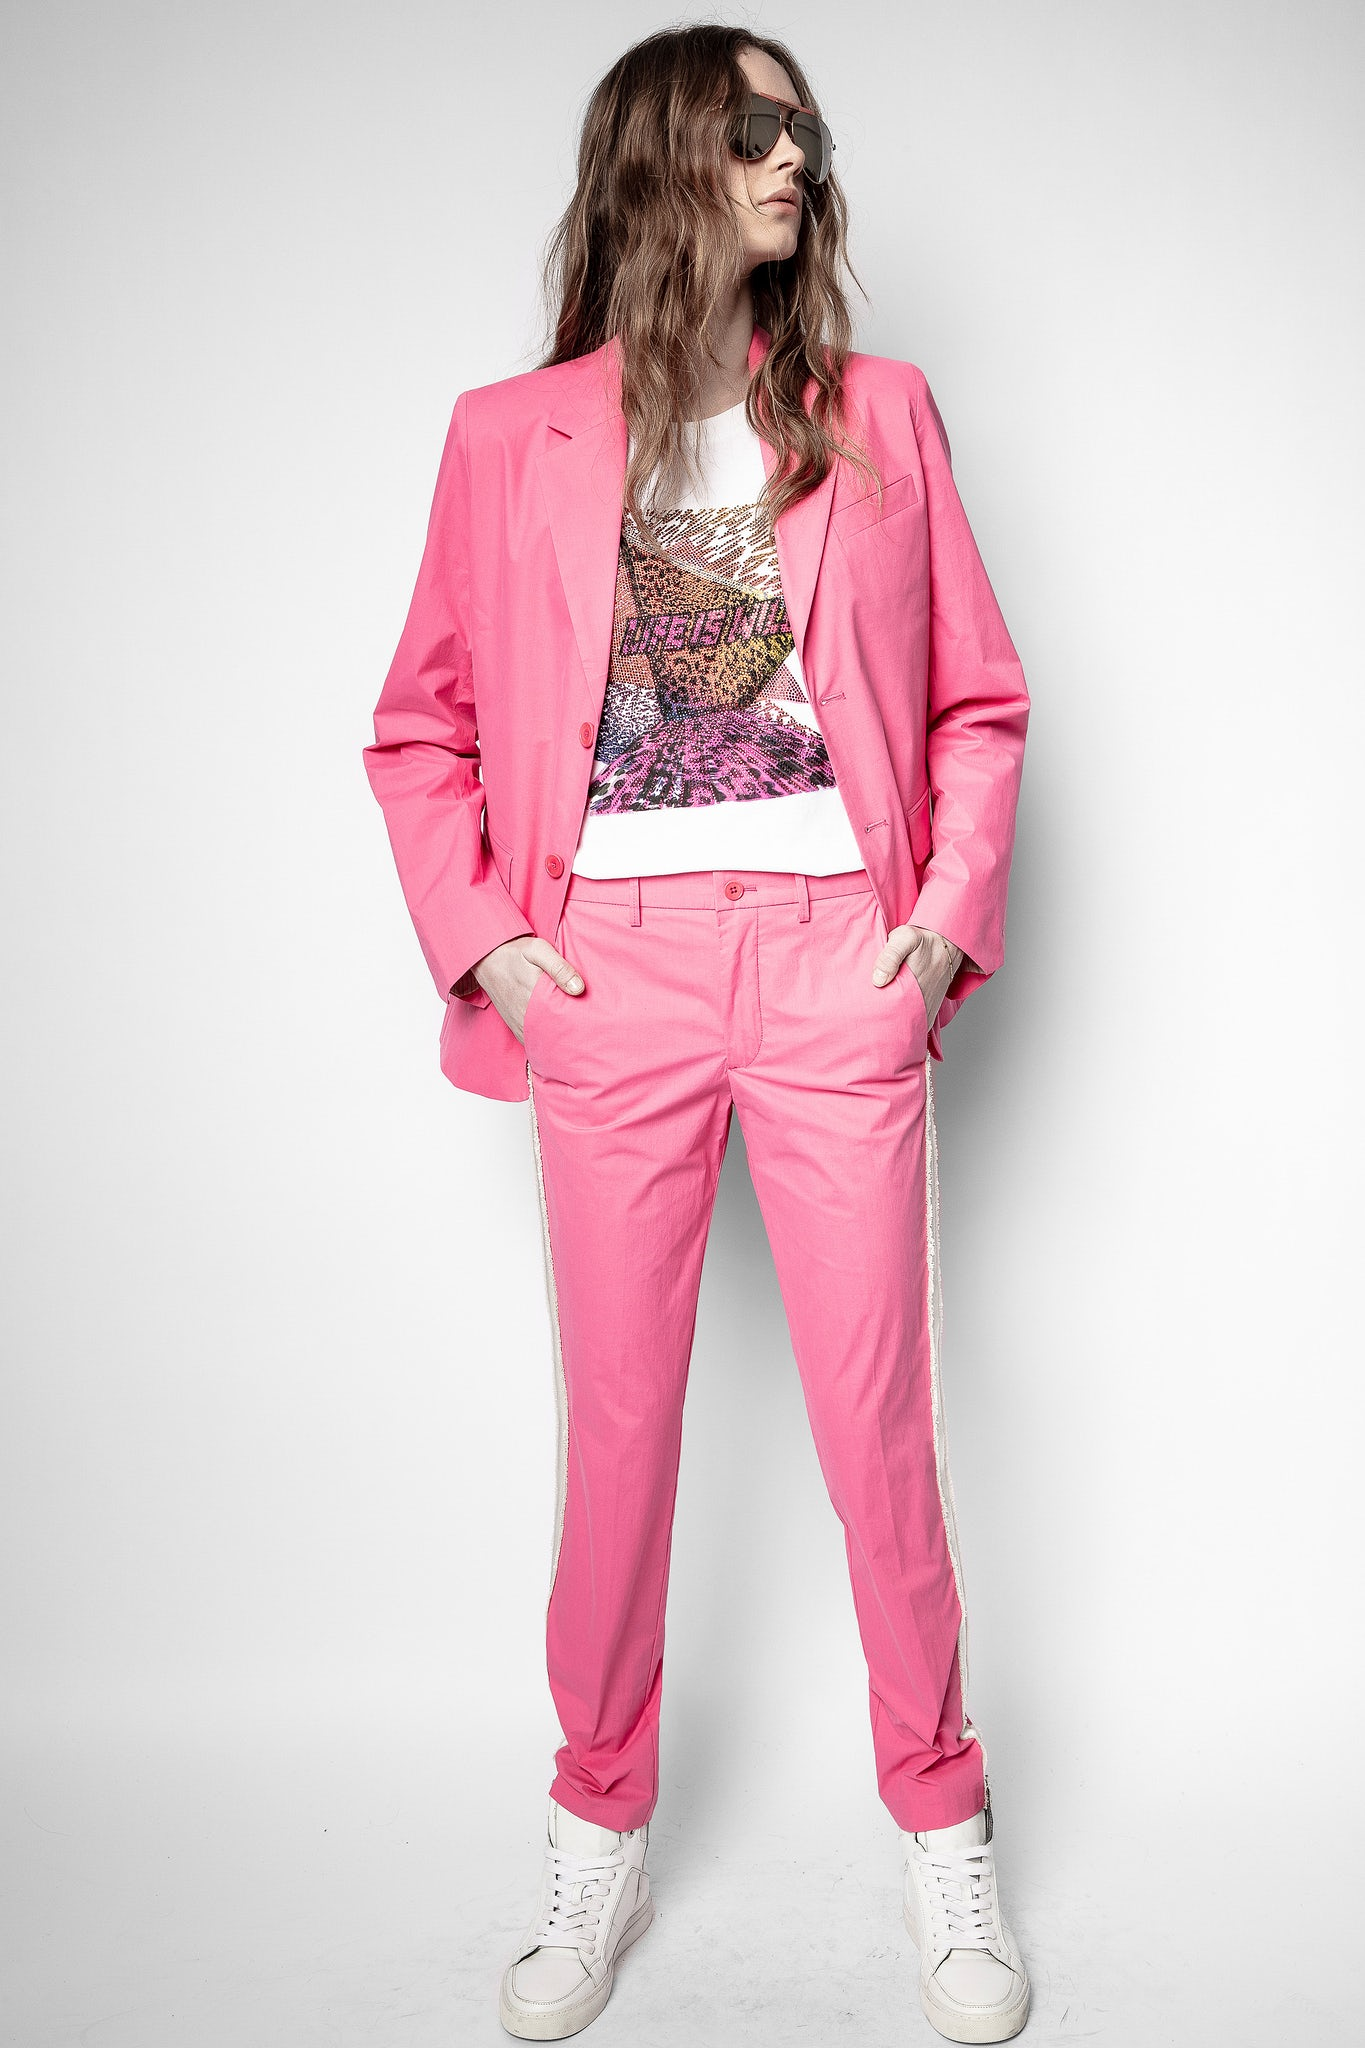 Girl in pink suit